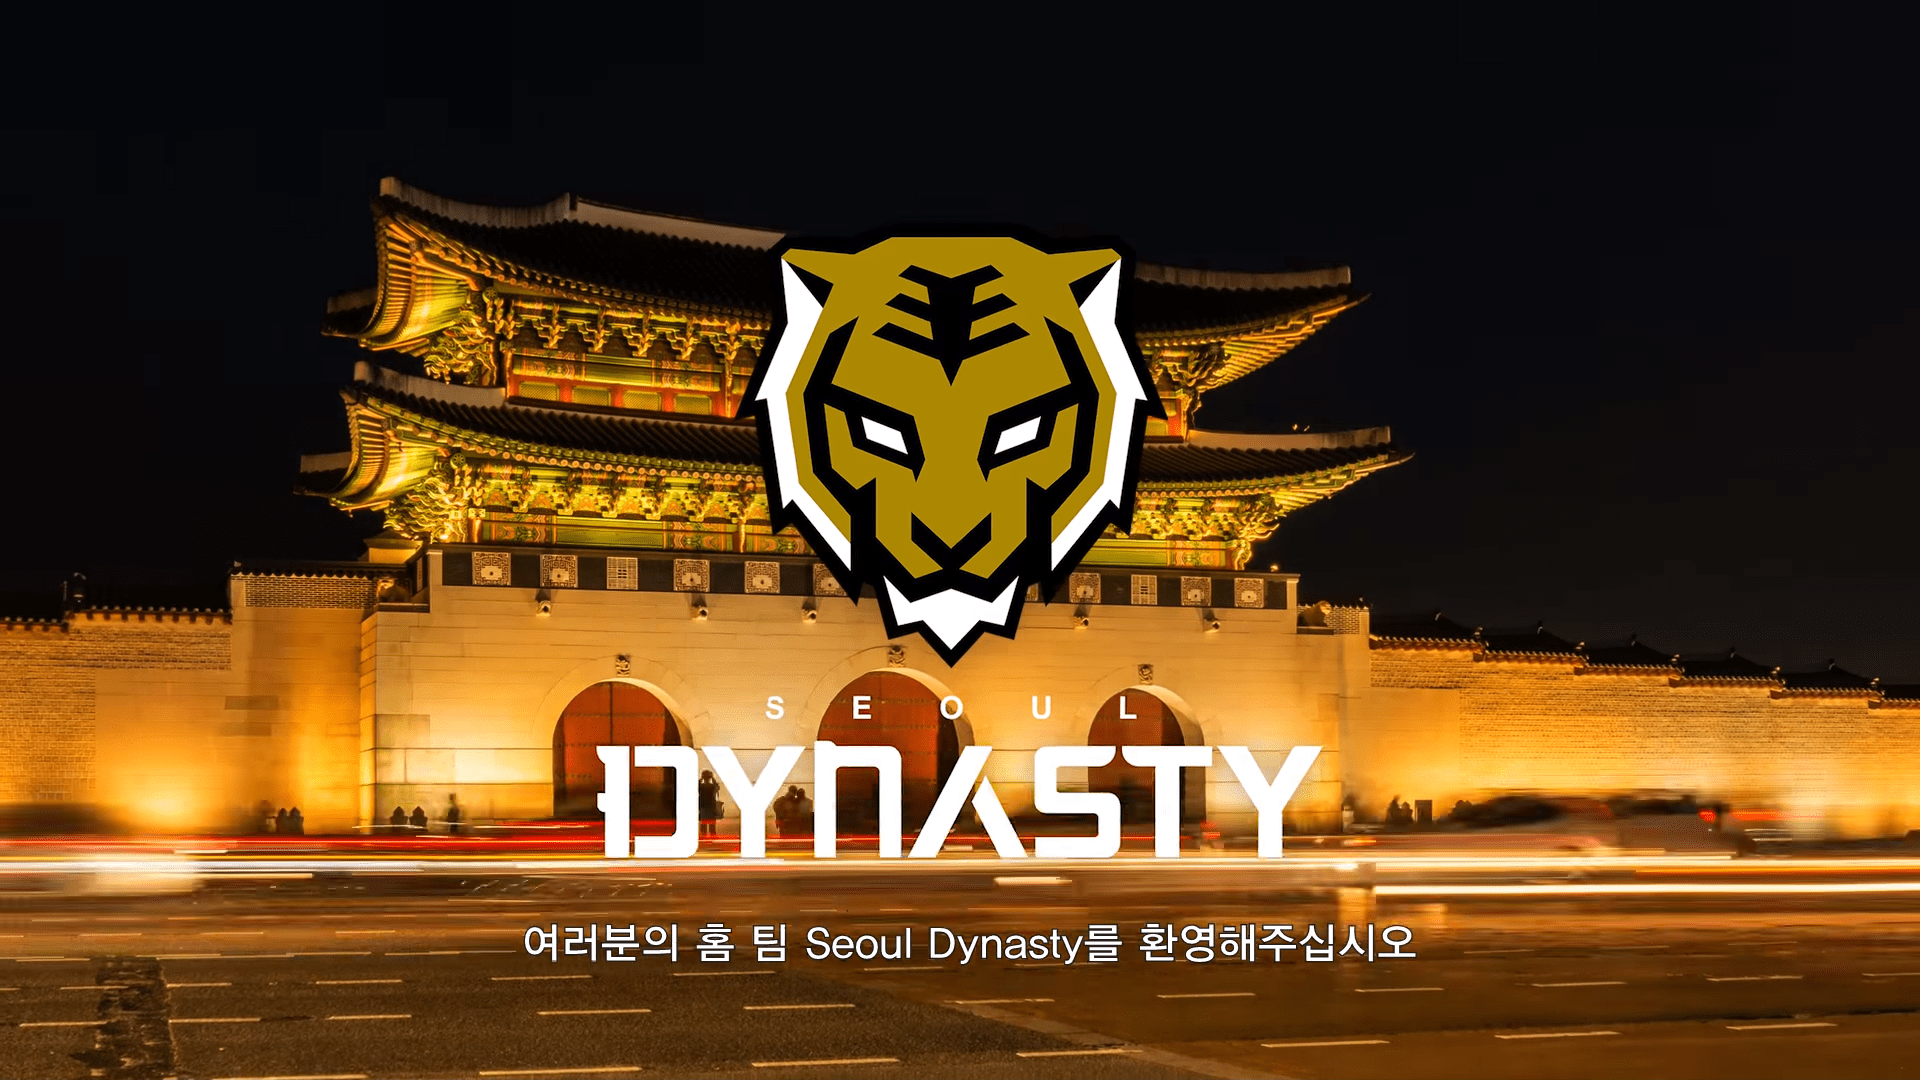 Overwatch League: Slime Confirmed This Morning As Being Signed To The Seoul Dynasty